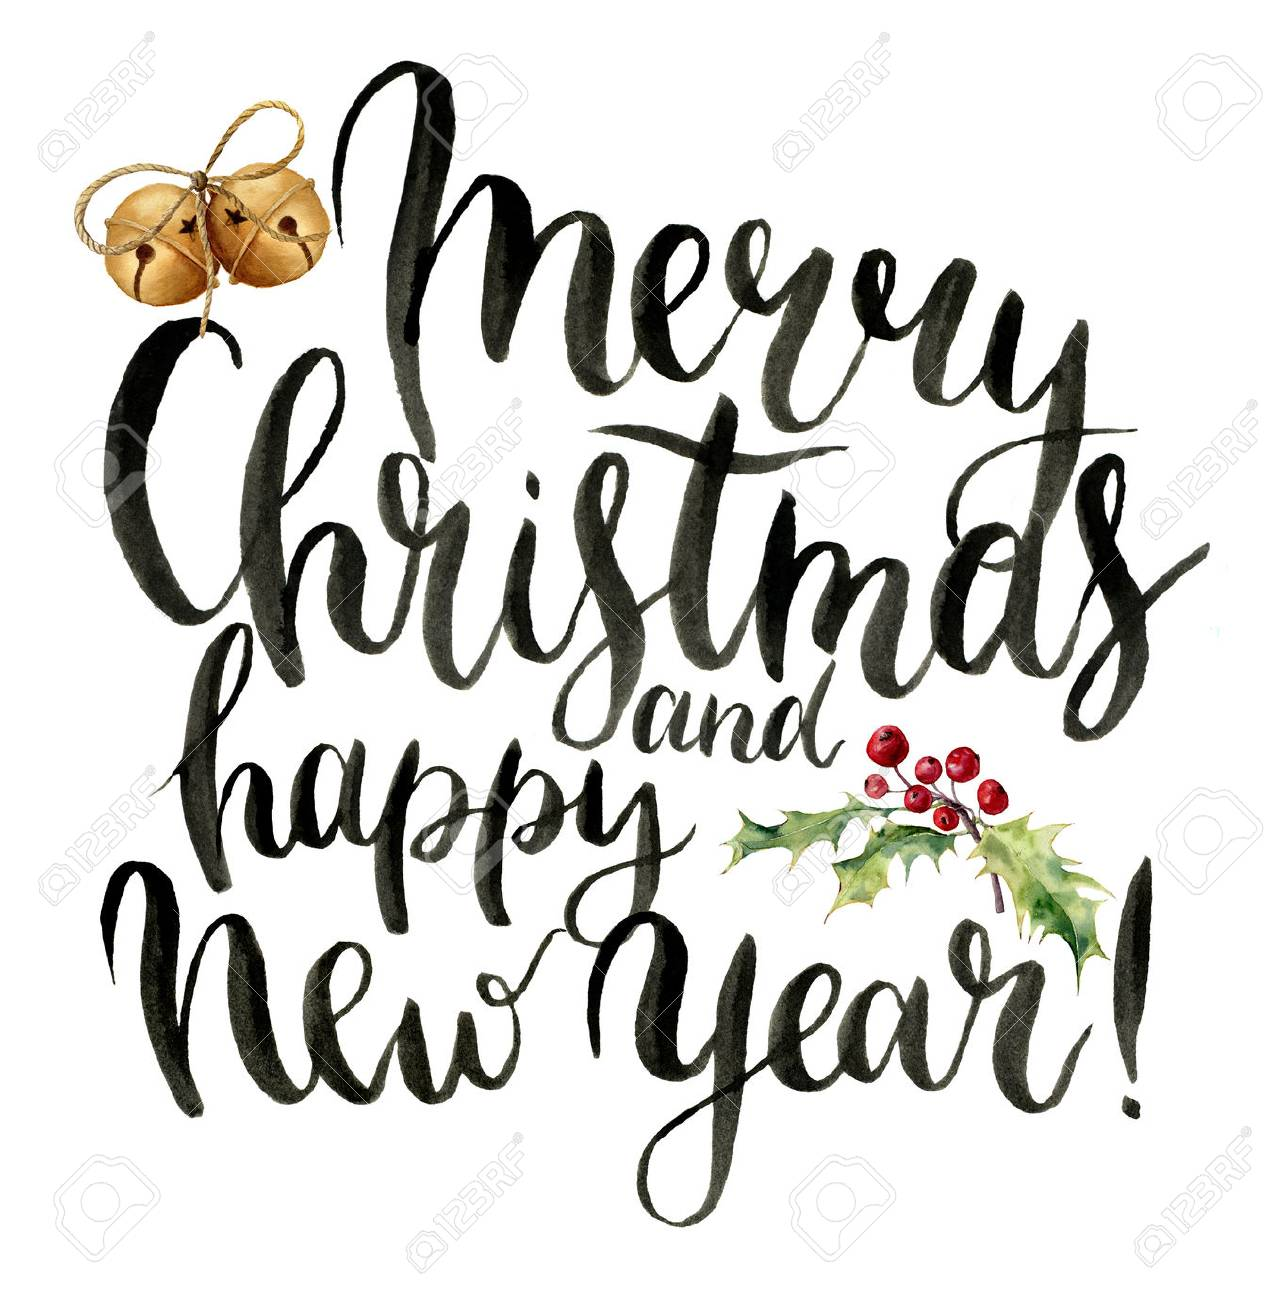 watercolor print witn merry christmas and happy new year lettering stock photo picture and royalty free image image 68959009 watercolor print witn merry christmas and happy new year lettering